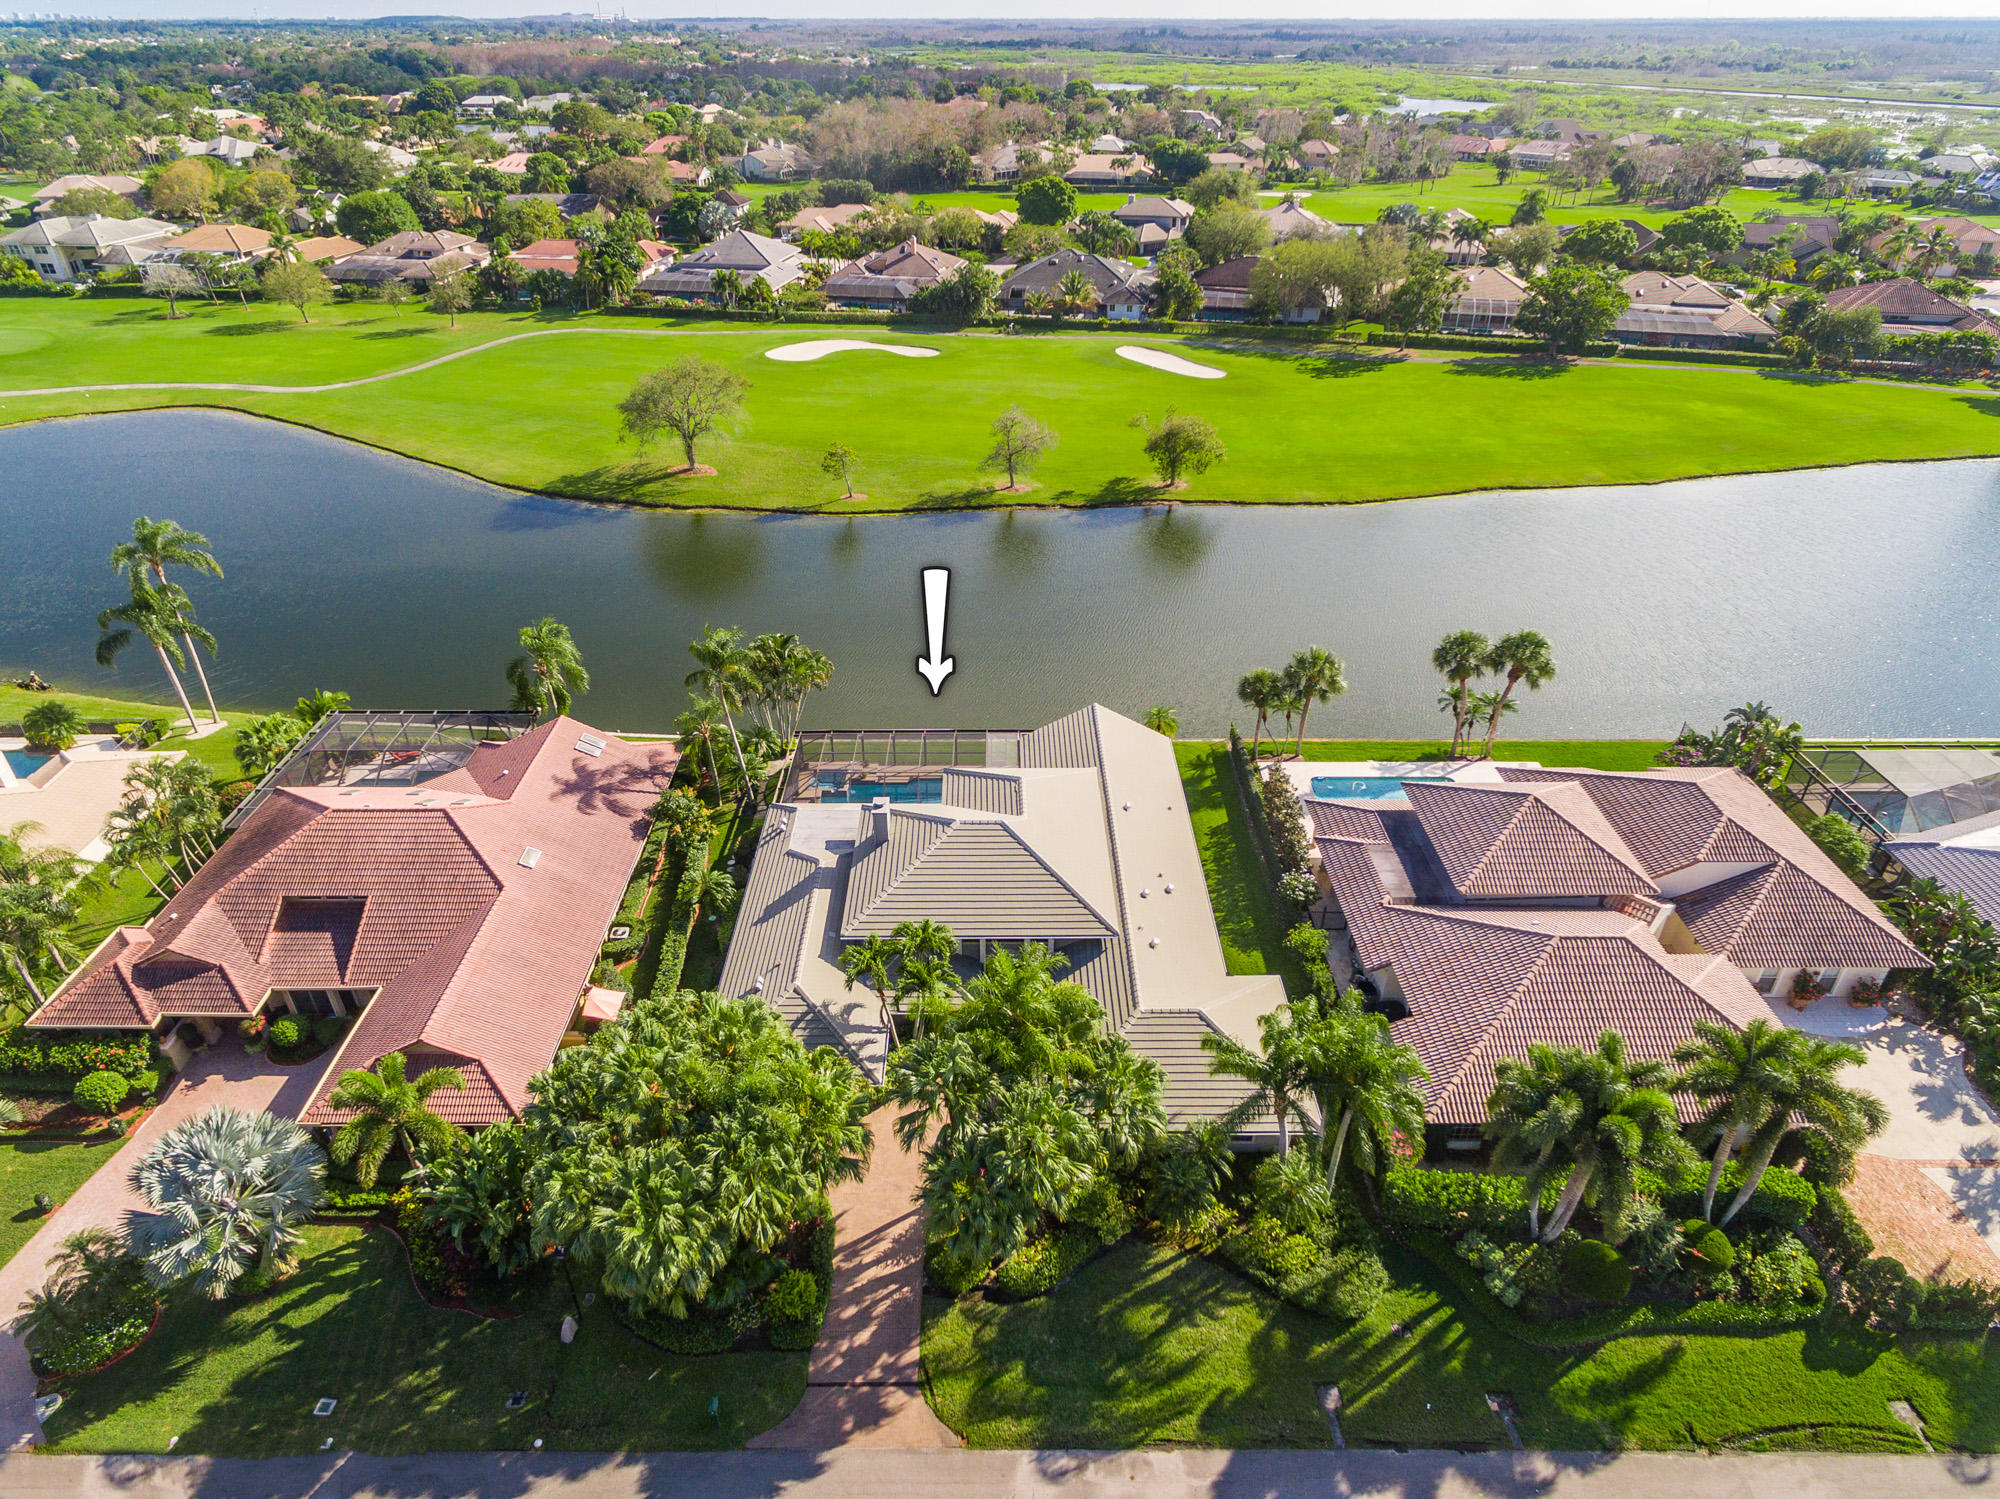 73 Dunbar Road, Palm Beach Gardens, Florida 33418, 3 Bedrooms Bedrooms, ,4.1 BathroomsBathrooms,A,Single family,Dunbar,RX-10506482